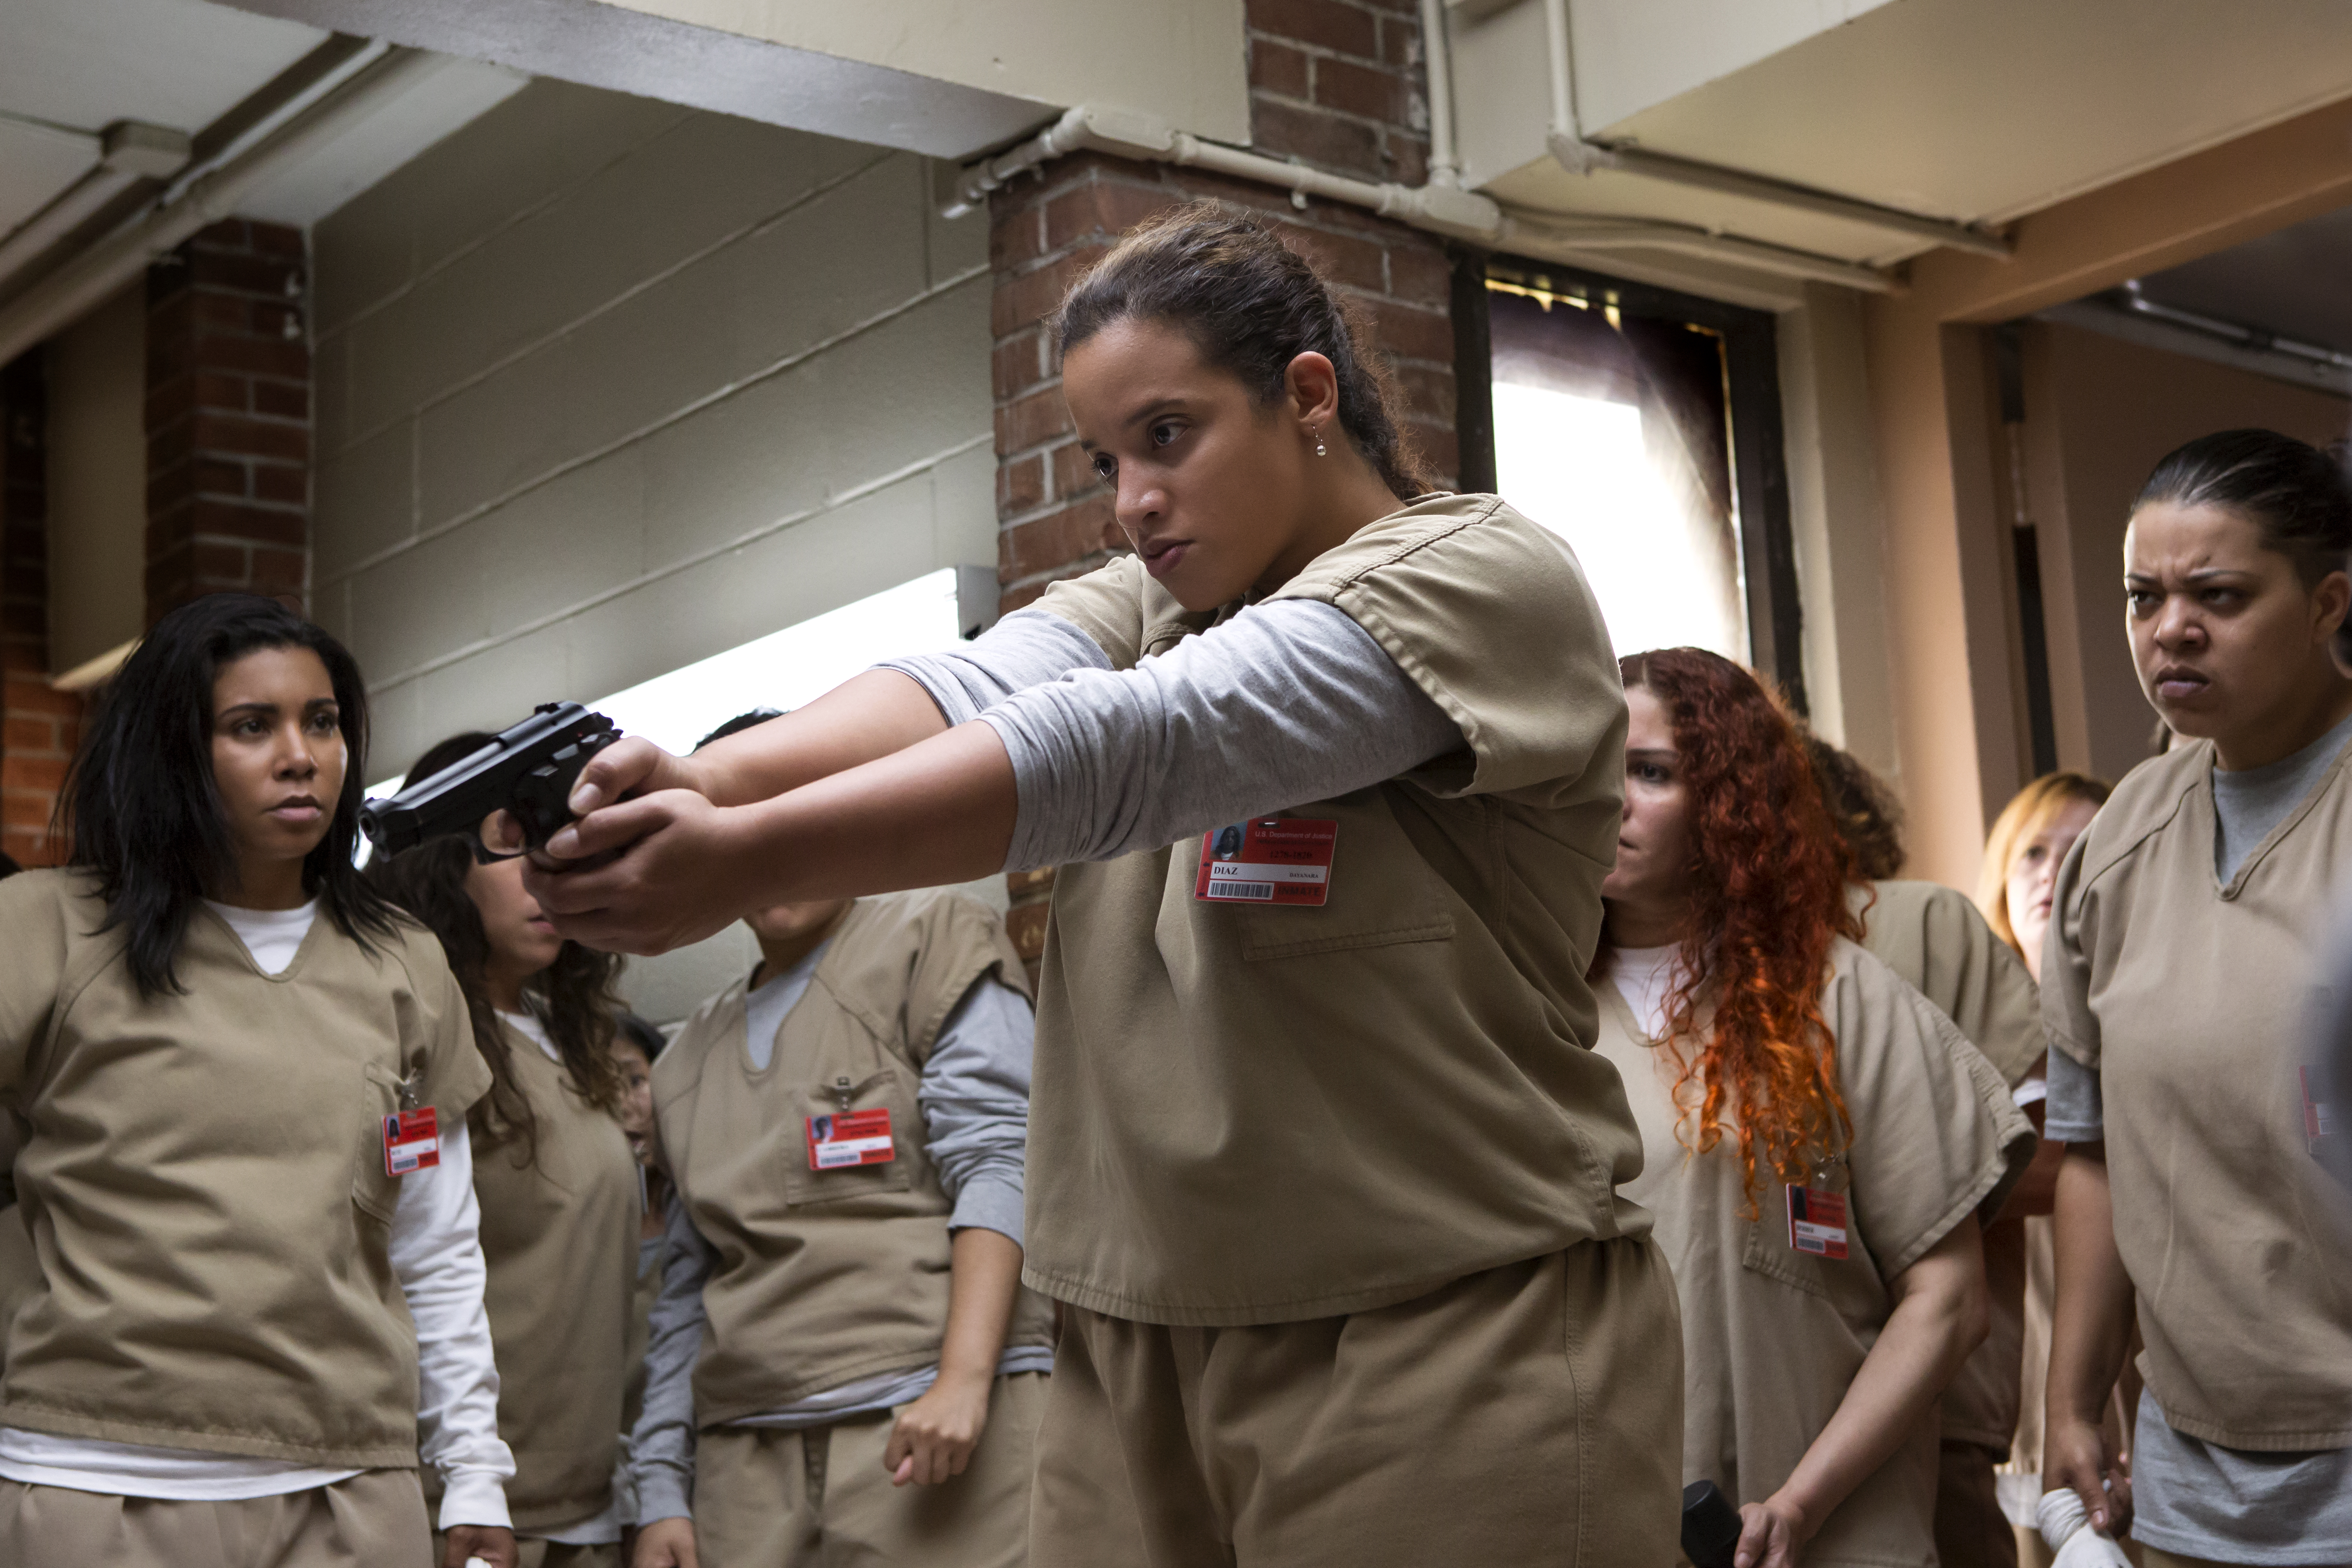 TRAILER: OITNB's Prison Riot Plotline Takes a Crazy Turn in Intense Season 5 Teaser